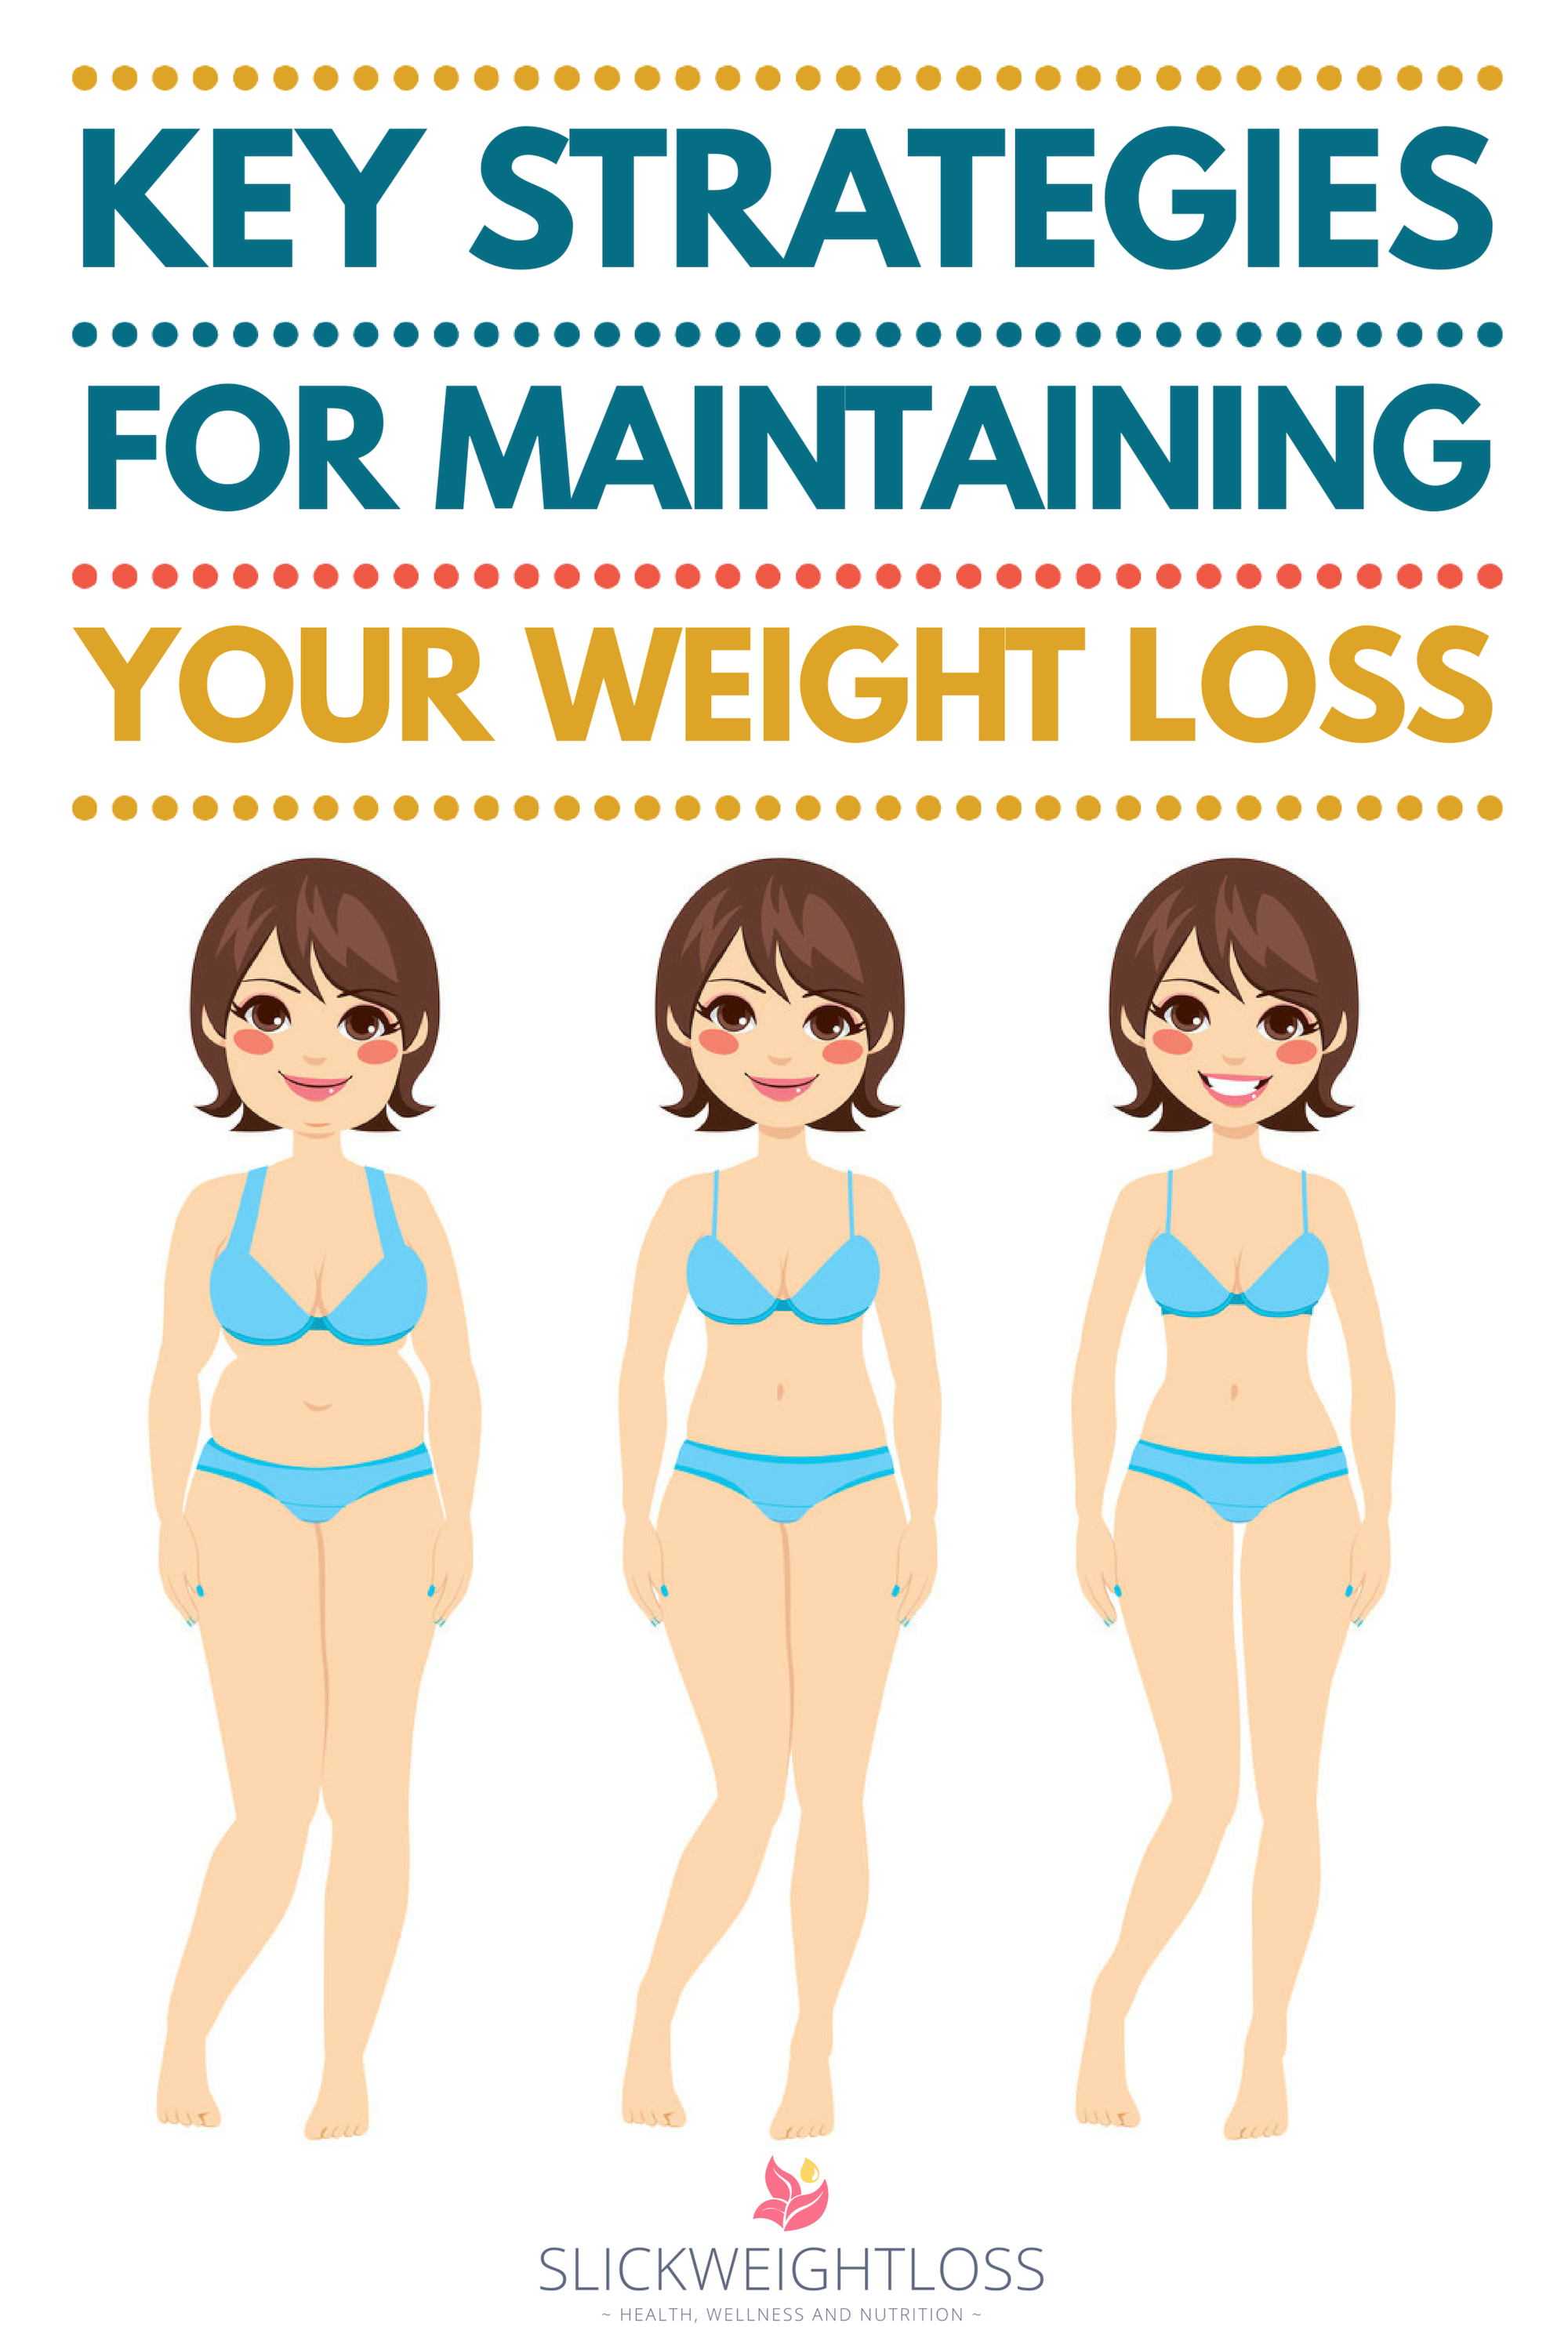 Communication on this topic: How to Maintain Your Weight Loss, how-to-maintain-your-weight-loss/